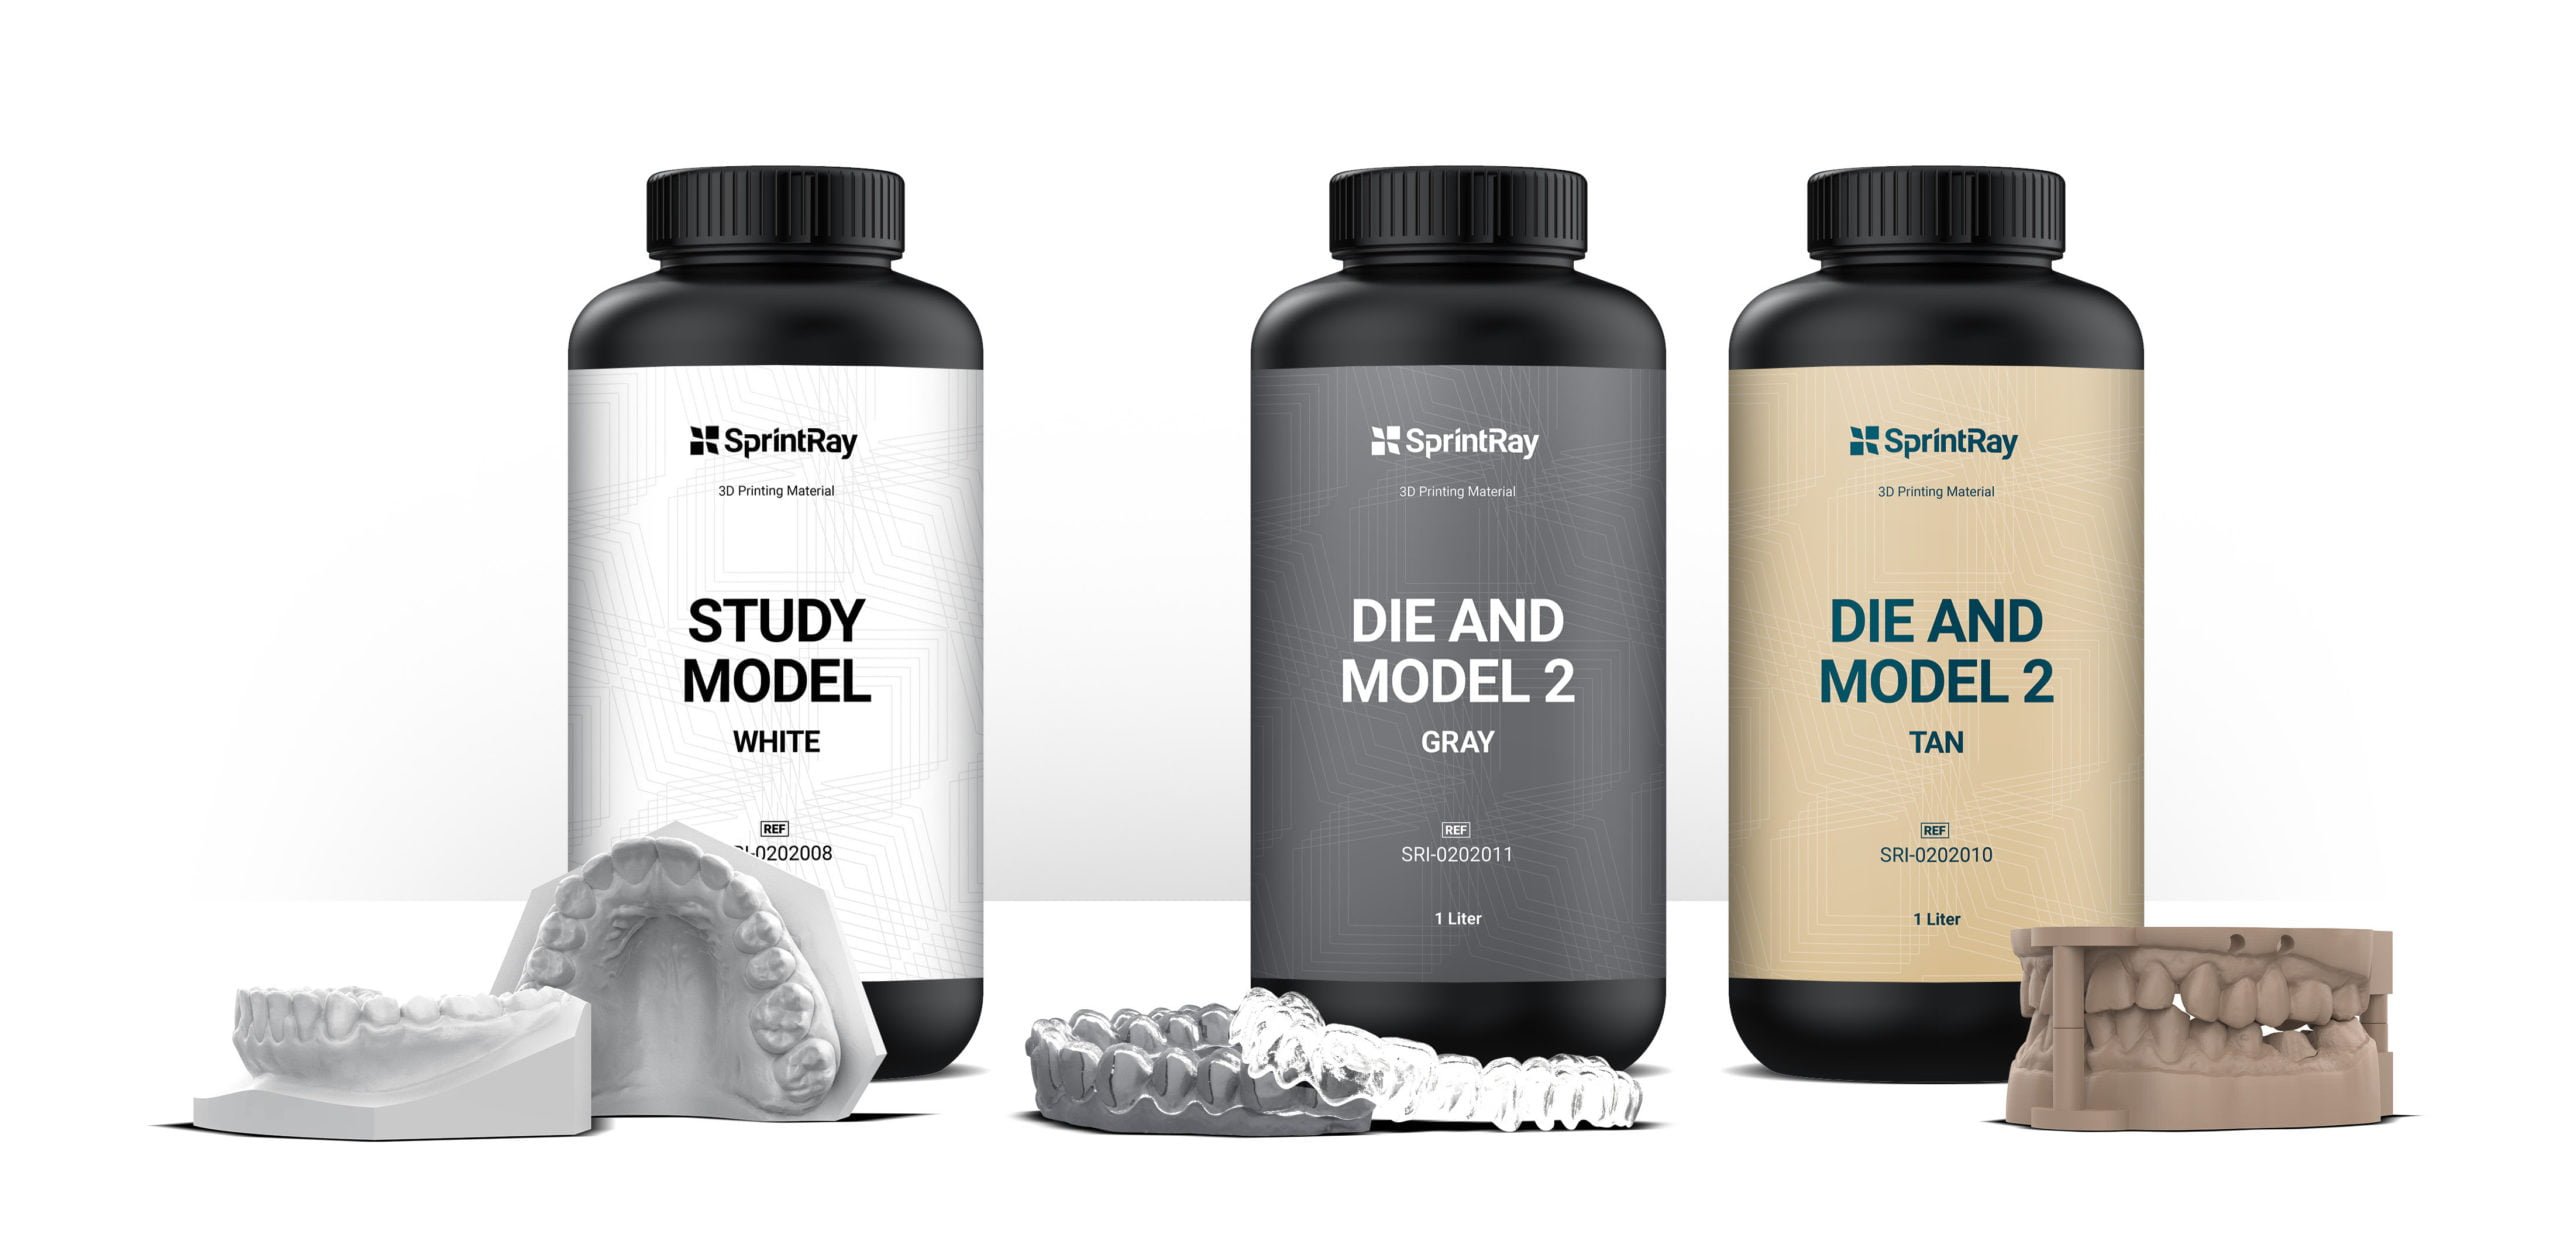 SprintRay, Inc. Releases New and Improved Versions of Popular Die & Model Materials for Its Dental 3D Printing Ecosystem